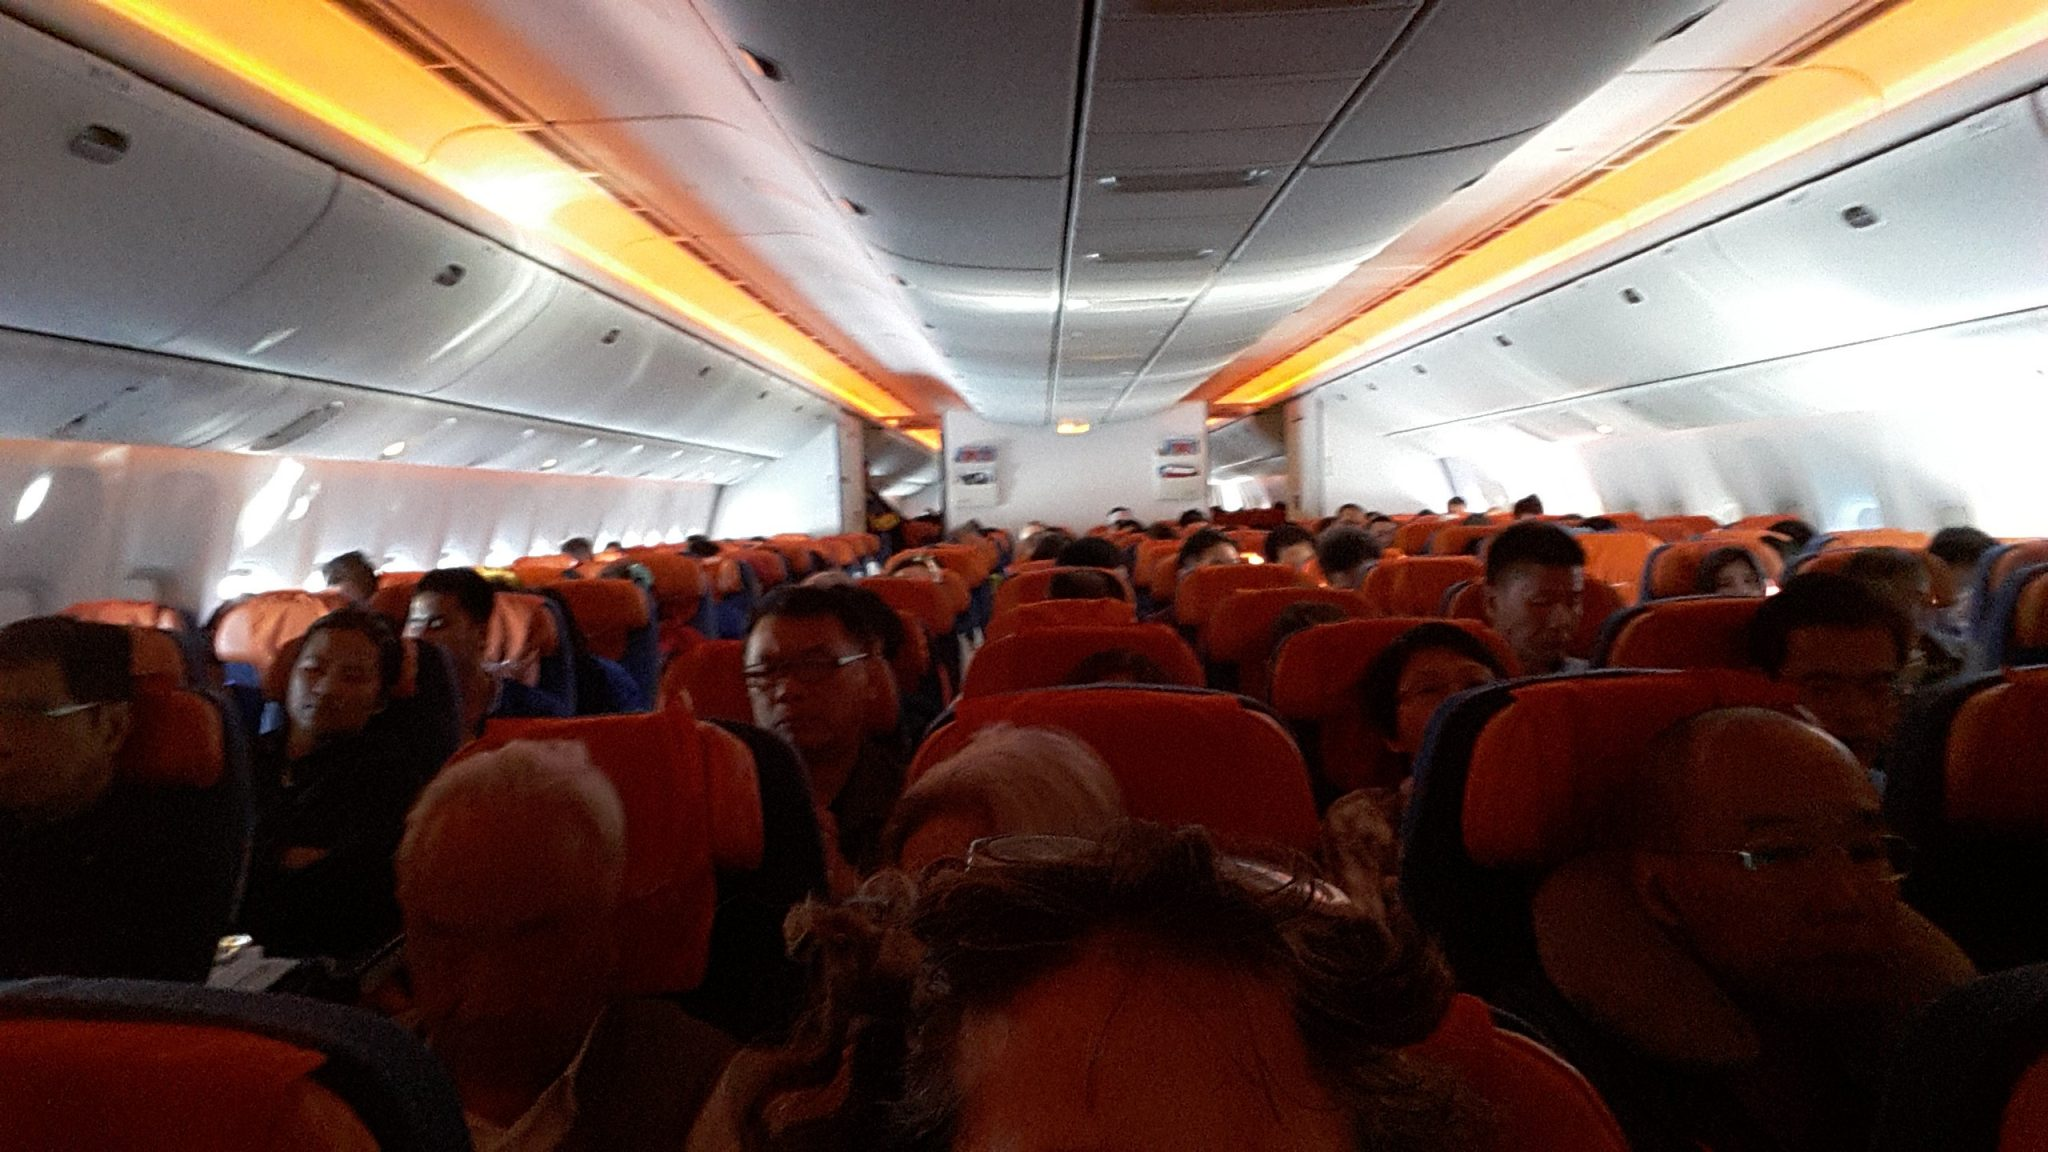 view of the interior of the Aeroflot Boeing aircraft